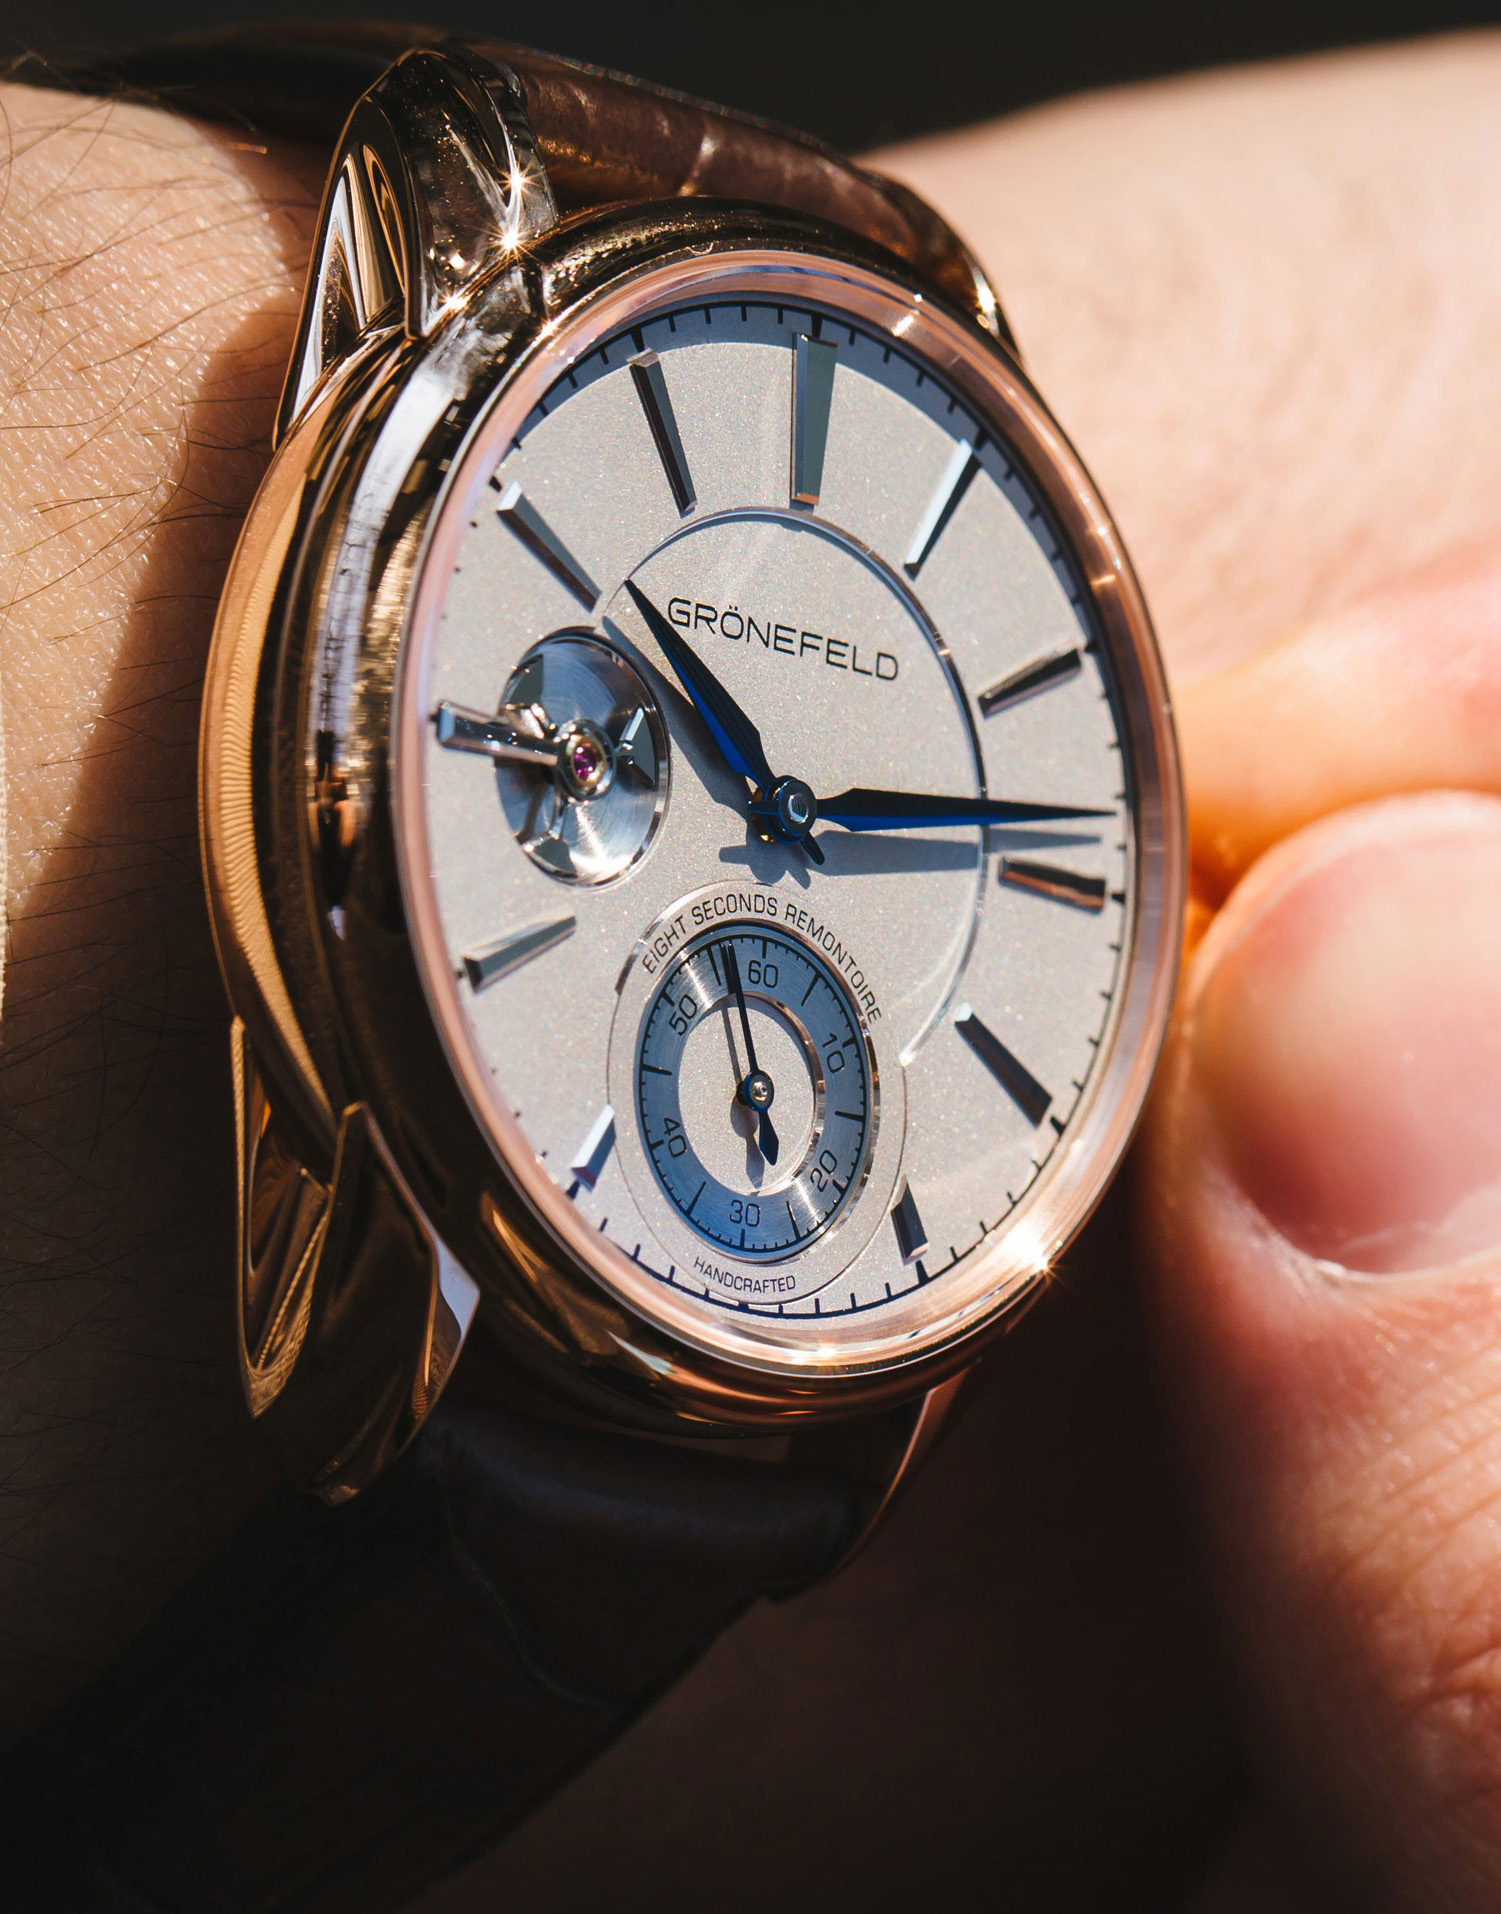 Video of the 1941 Remontoire